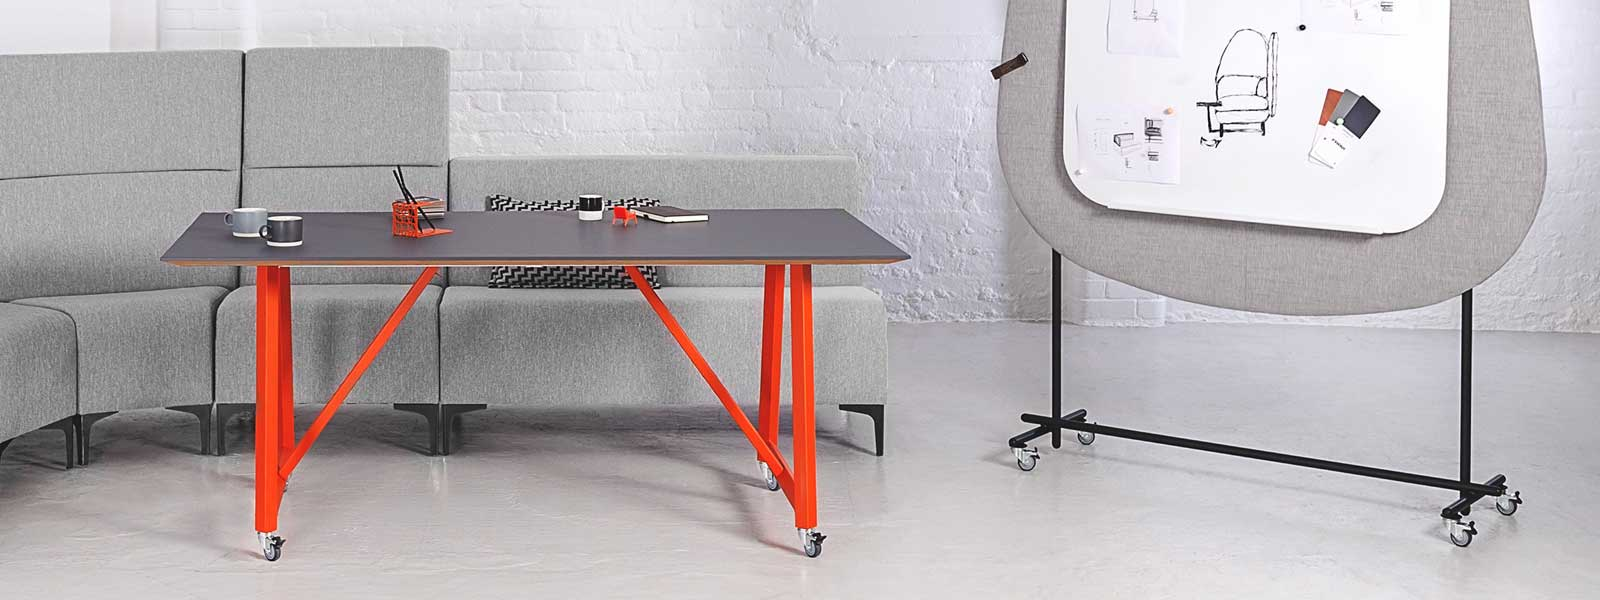 Frovi relic table and screen on wheels